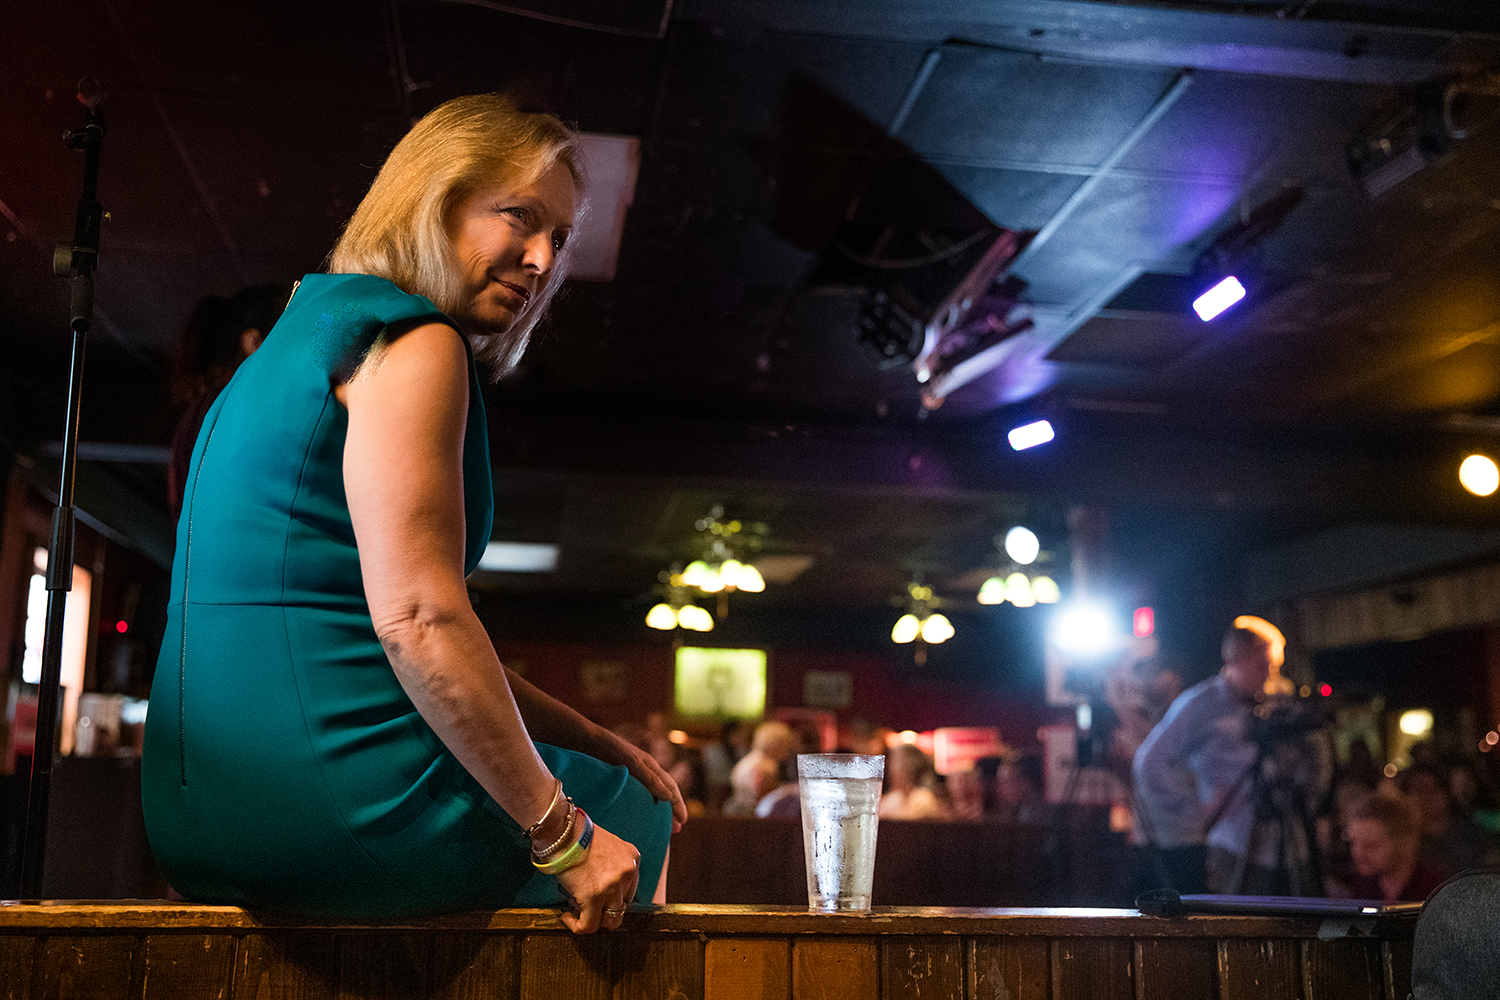 Sen. Kirsten Gillibrand, D-N.Y., listens to community members during a campaign event at The Mill in Iowa City on Thursday July 25, 2019. Sen. Gillibrand stopped in Iowa City as she campaigns for the Democratic Party's Nomination for the 2020 Presidential election.